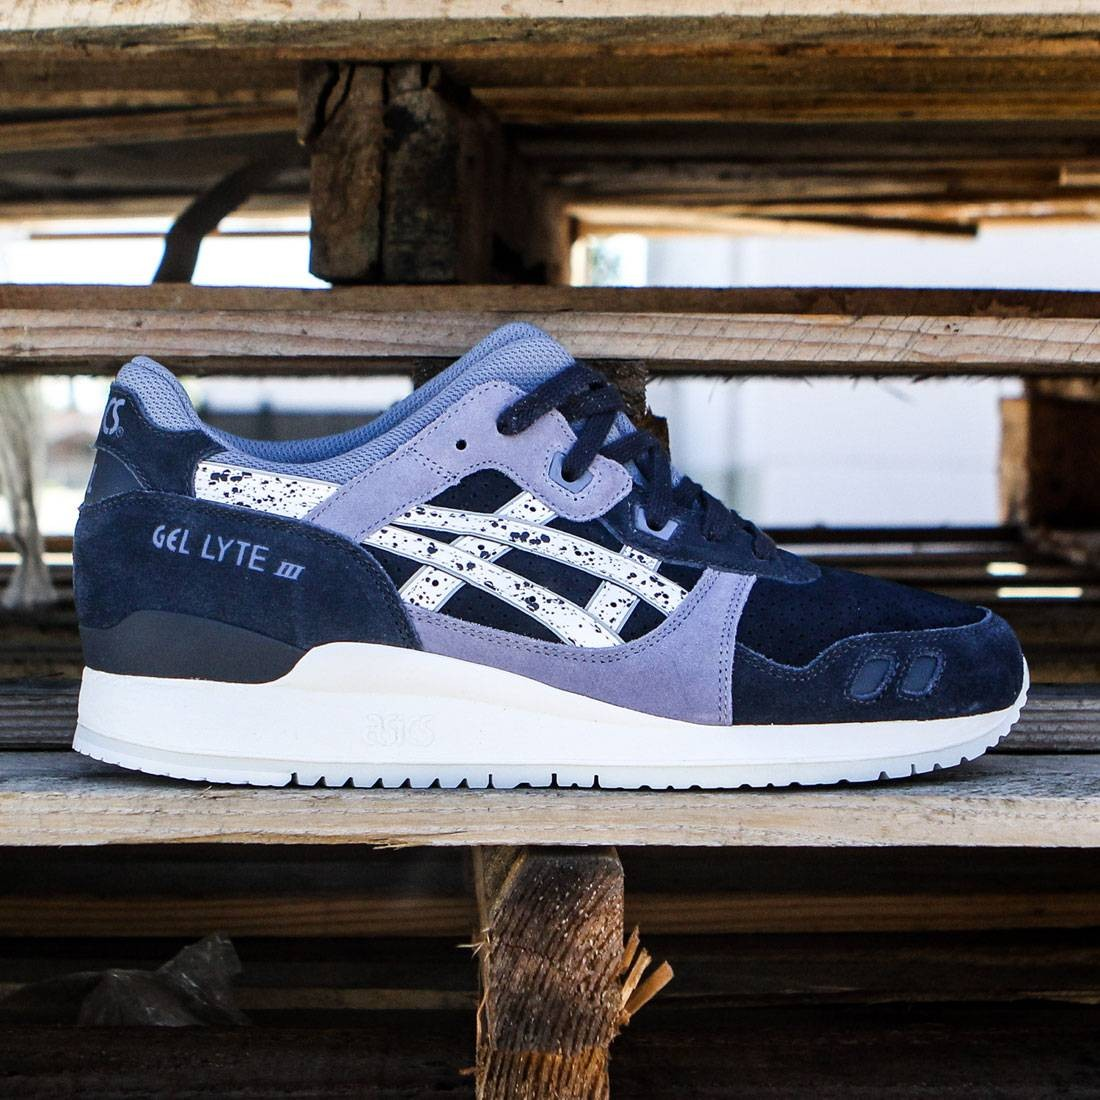 Buy asics gel lyte iii navy grey > Up to OFF68% Discounted